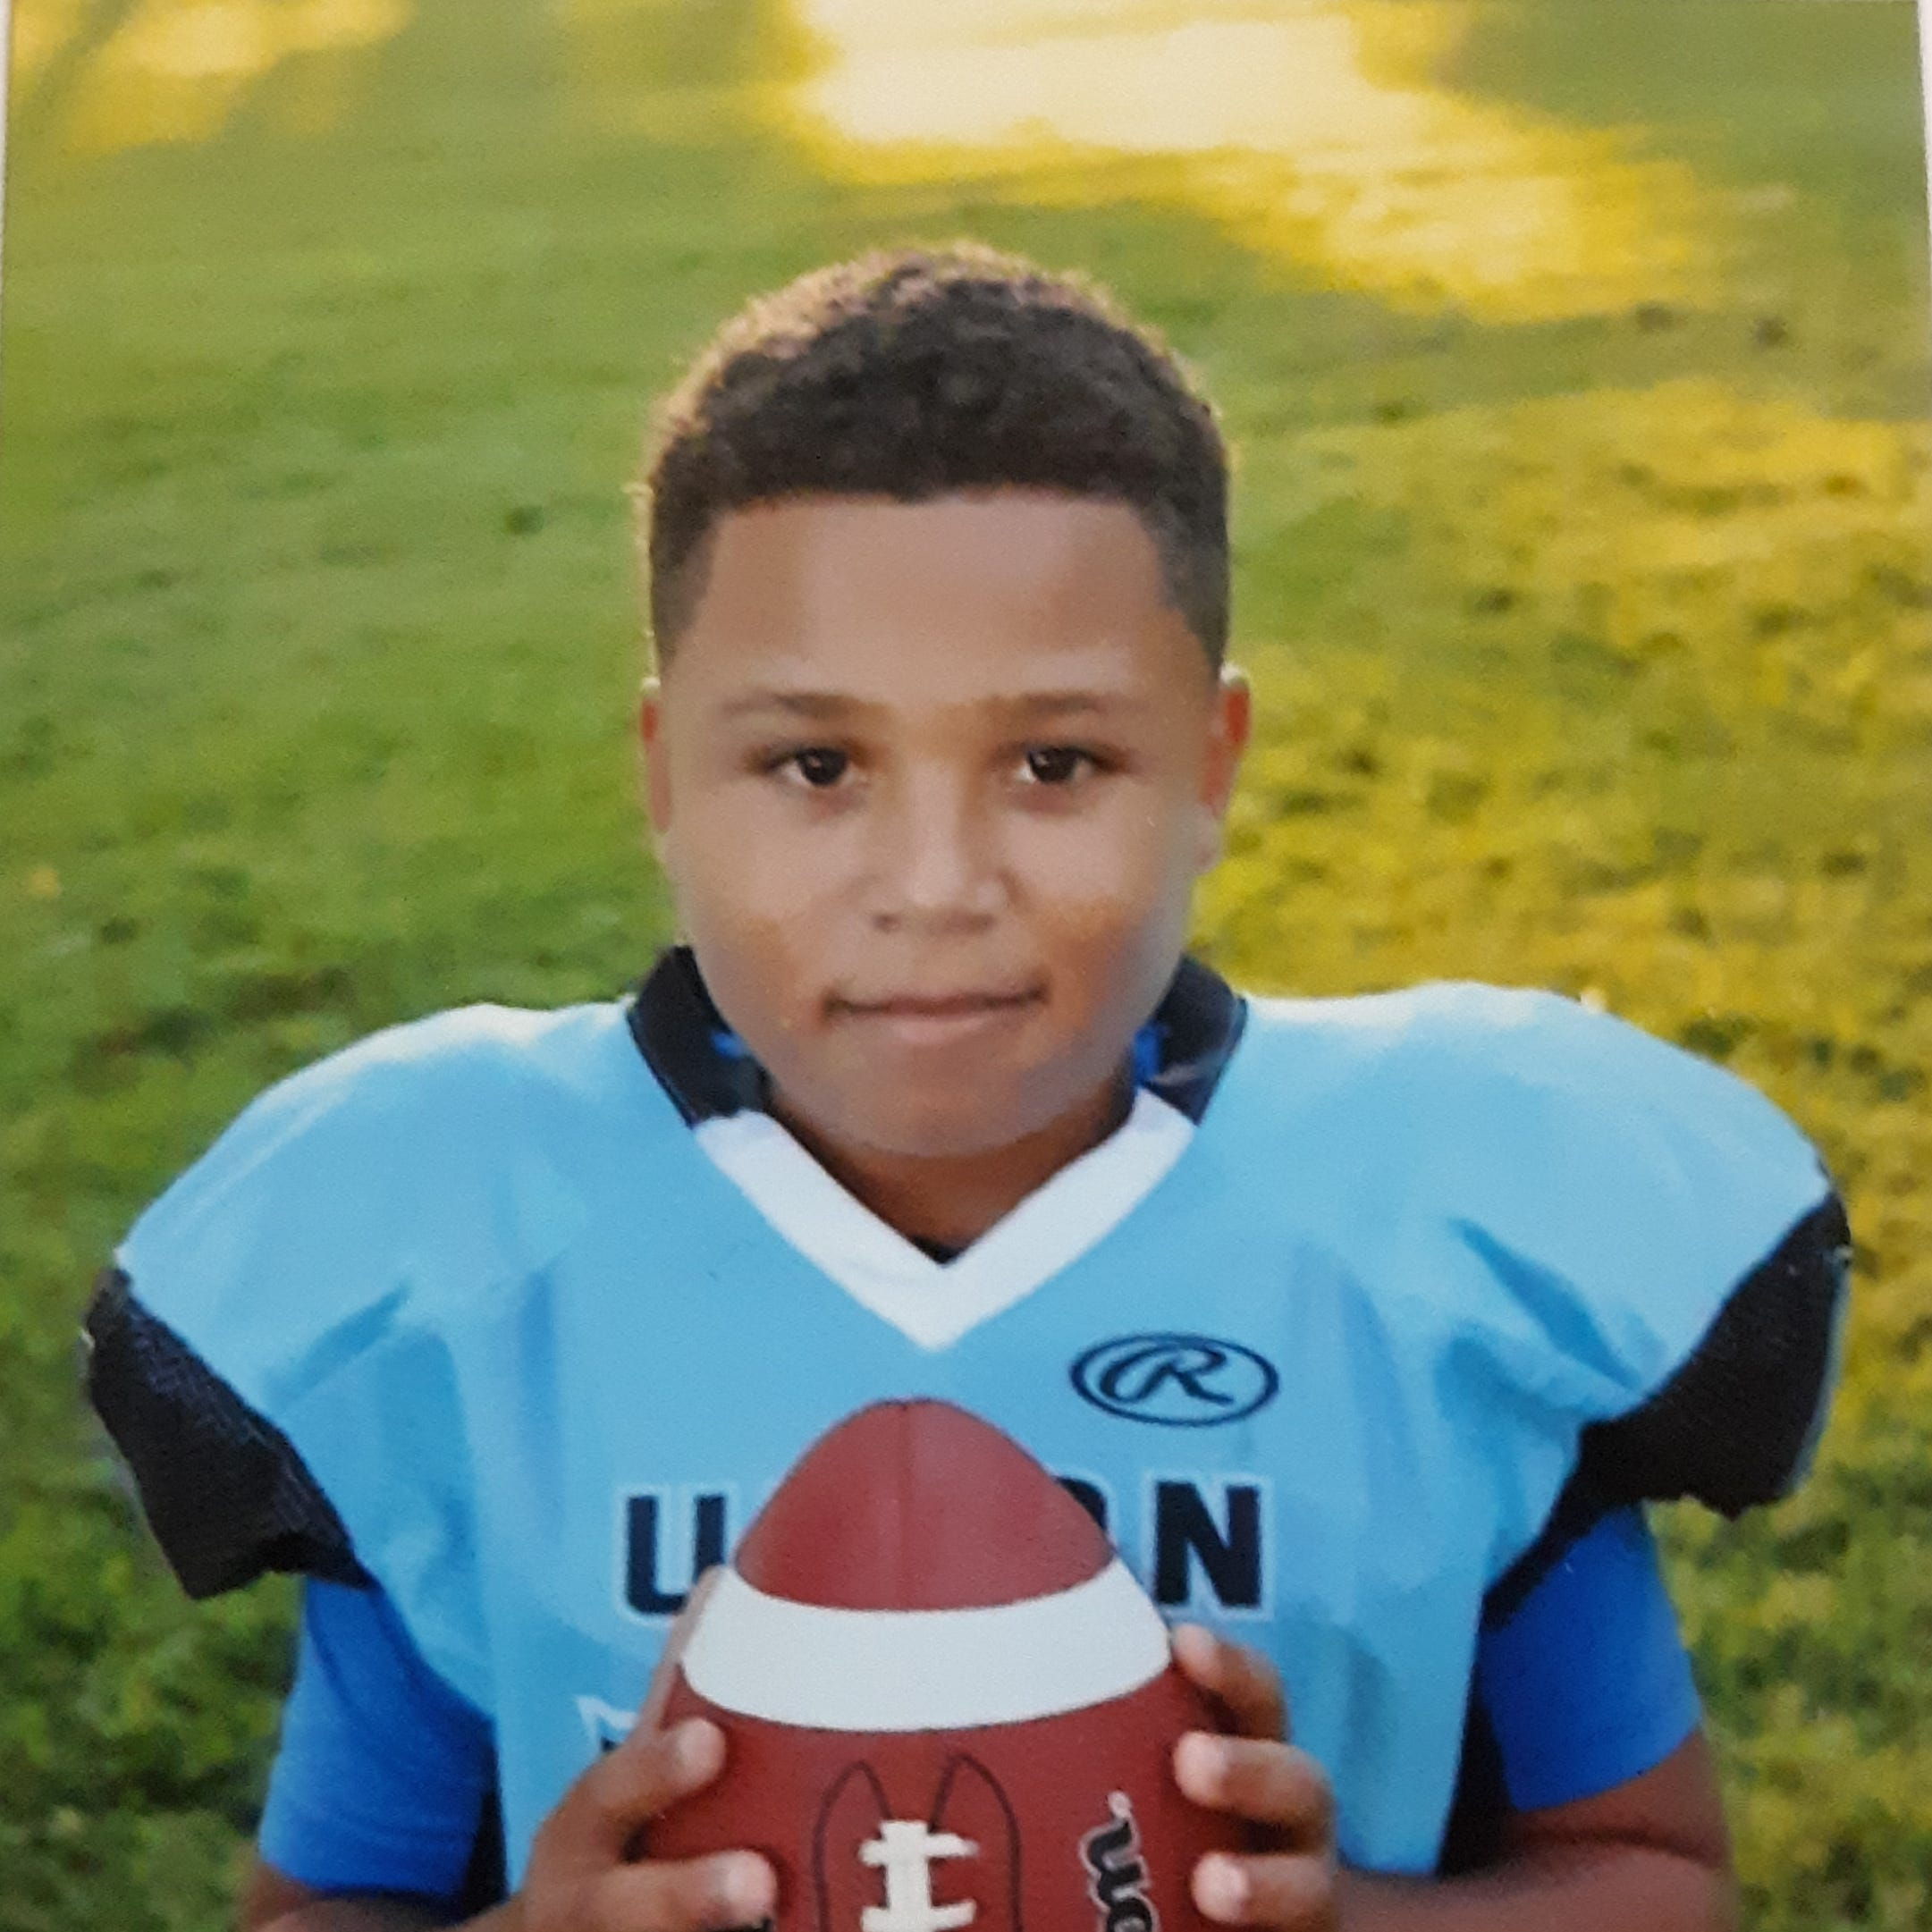 Union County's Jarren Johnson selected for Kentucky middle school all-star football game